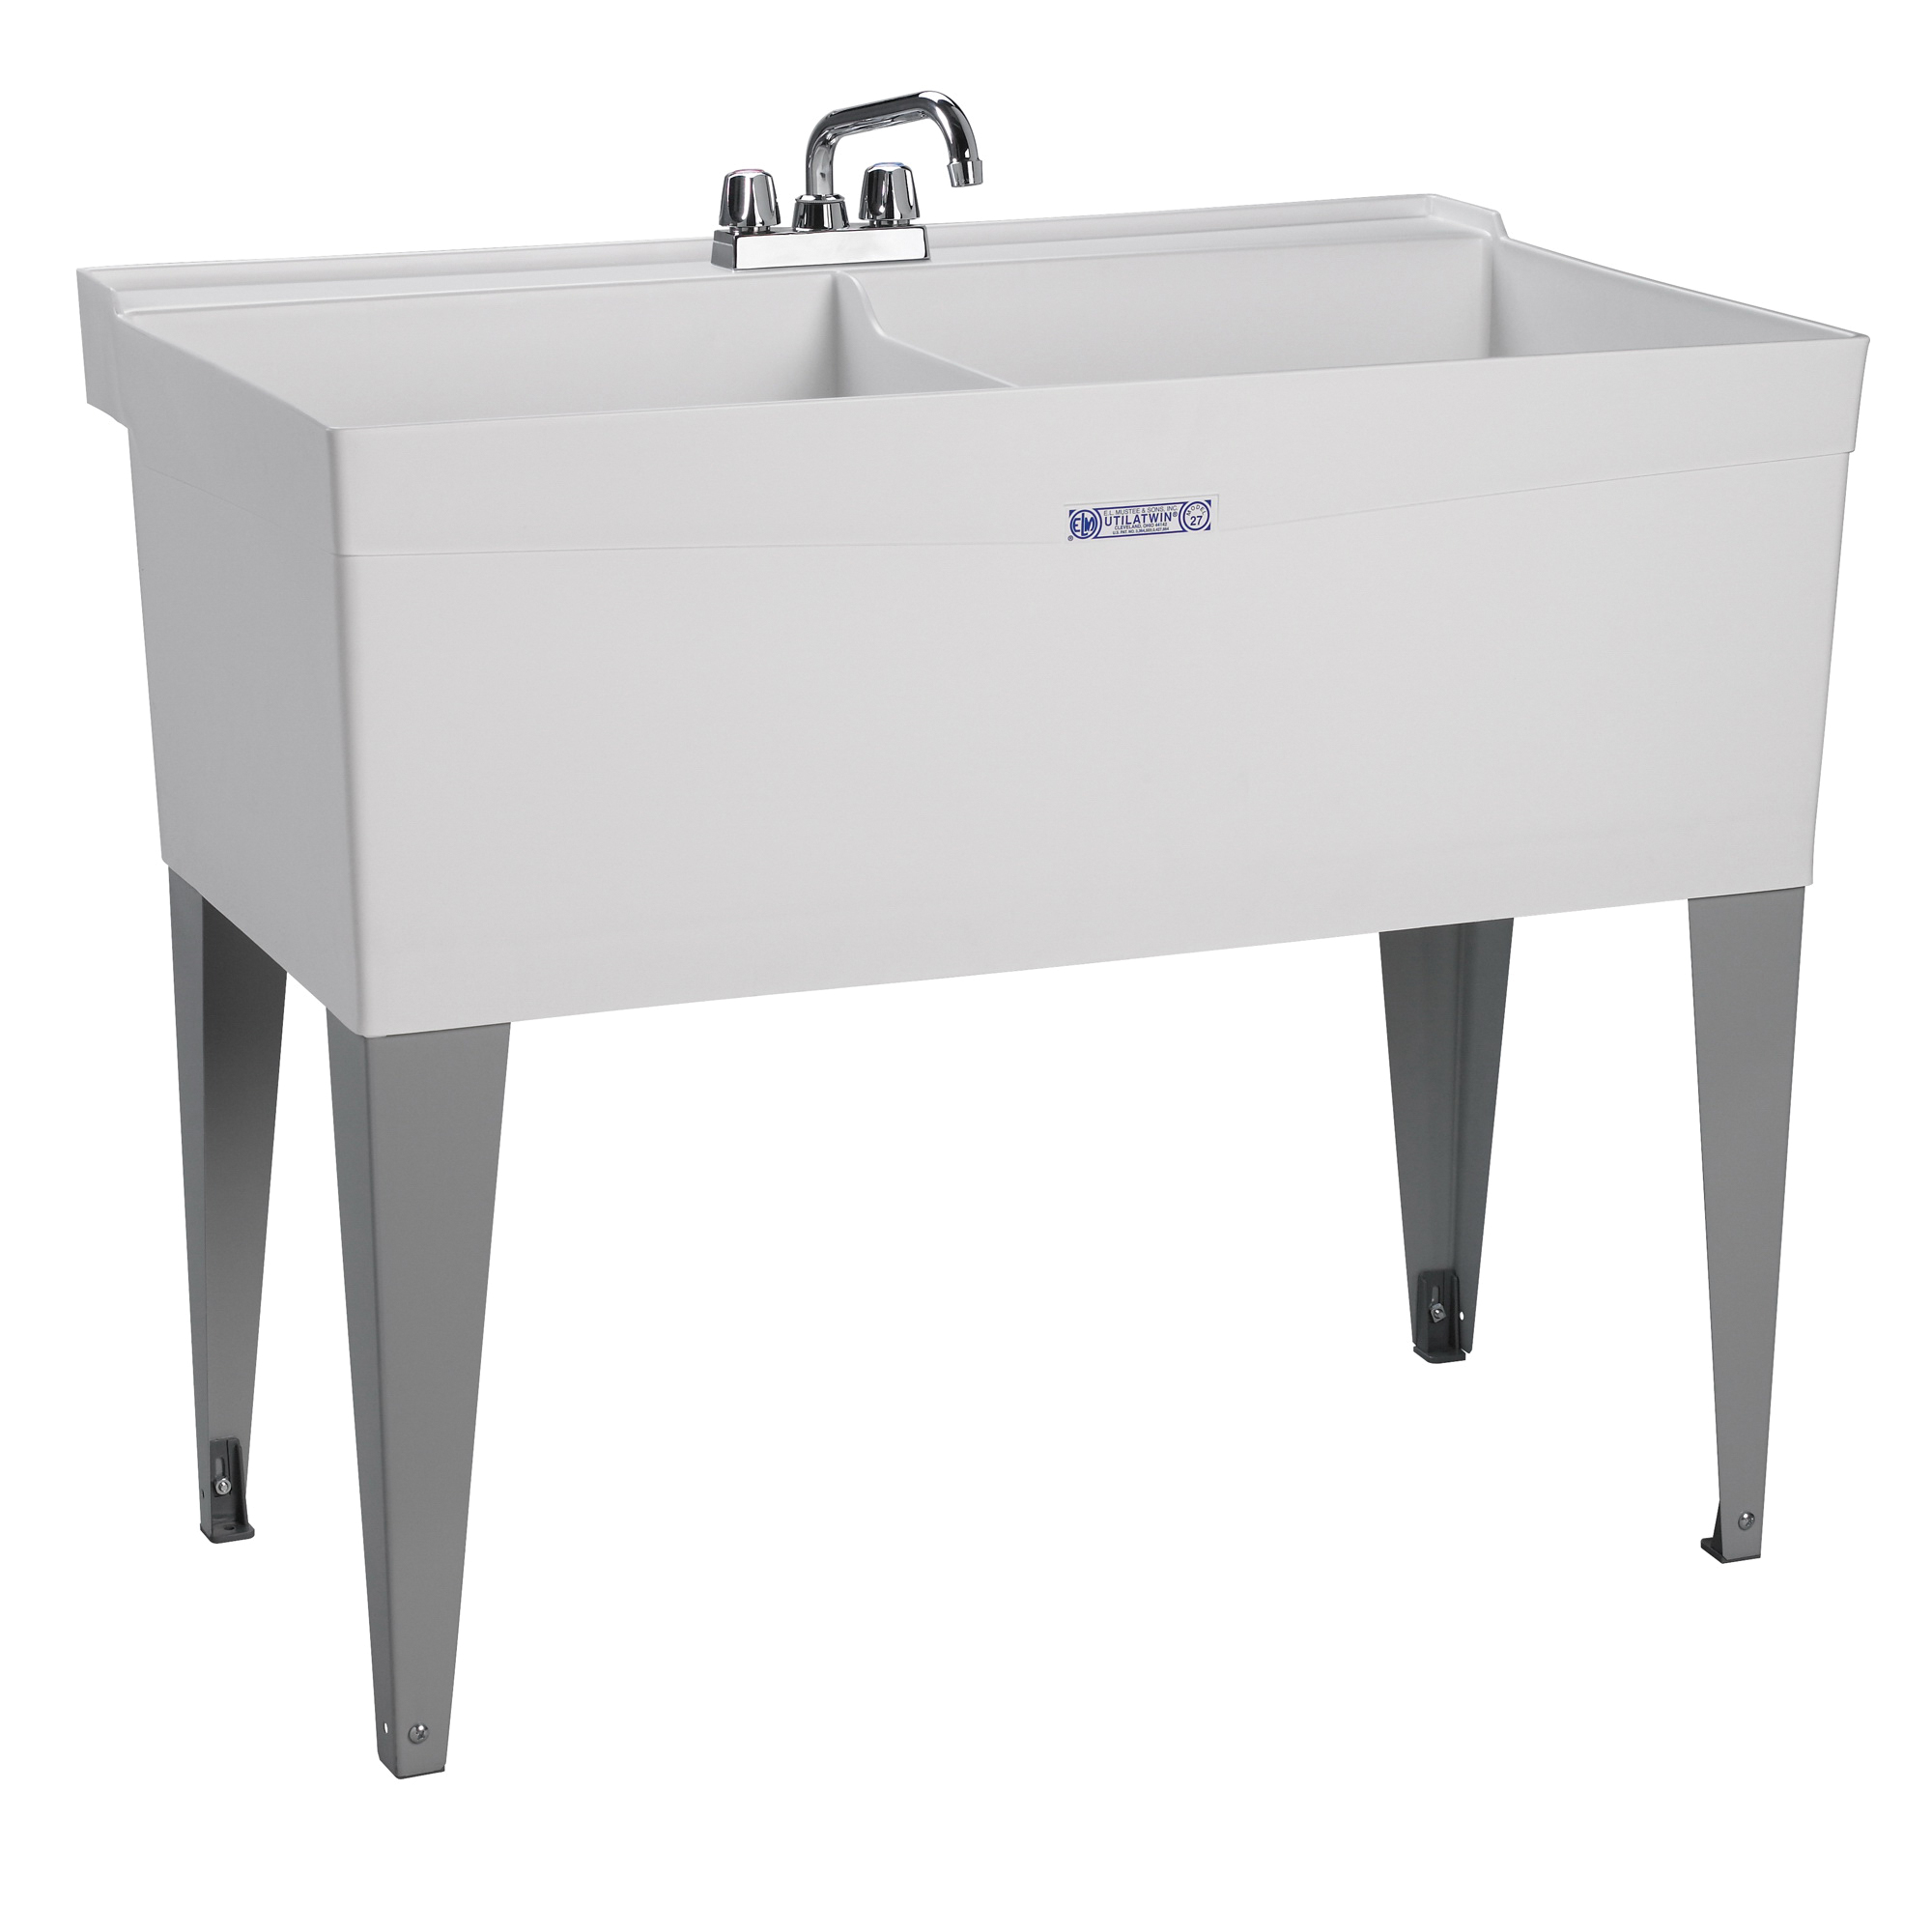 ELM® 27F UTILATWIN® Premier Laundry/Utility Tub, 40 in W x 24 in D x 34 in H, Floor Mount, Thermoplastic, White, Domestic